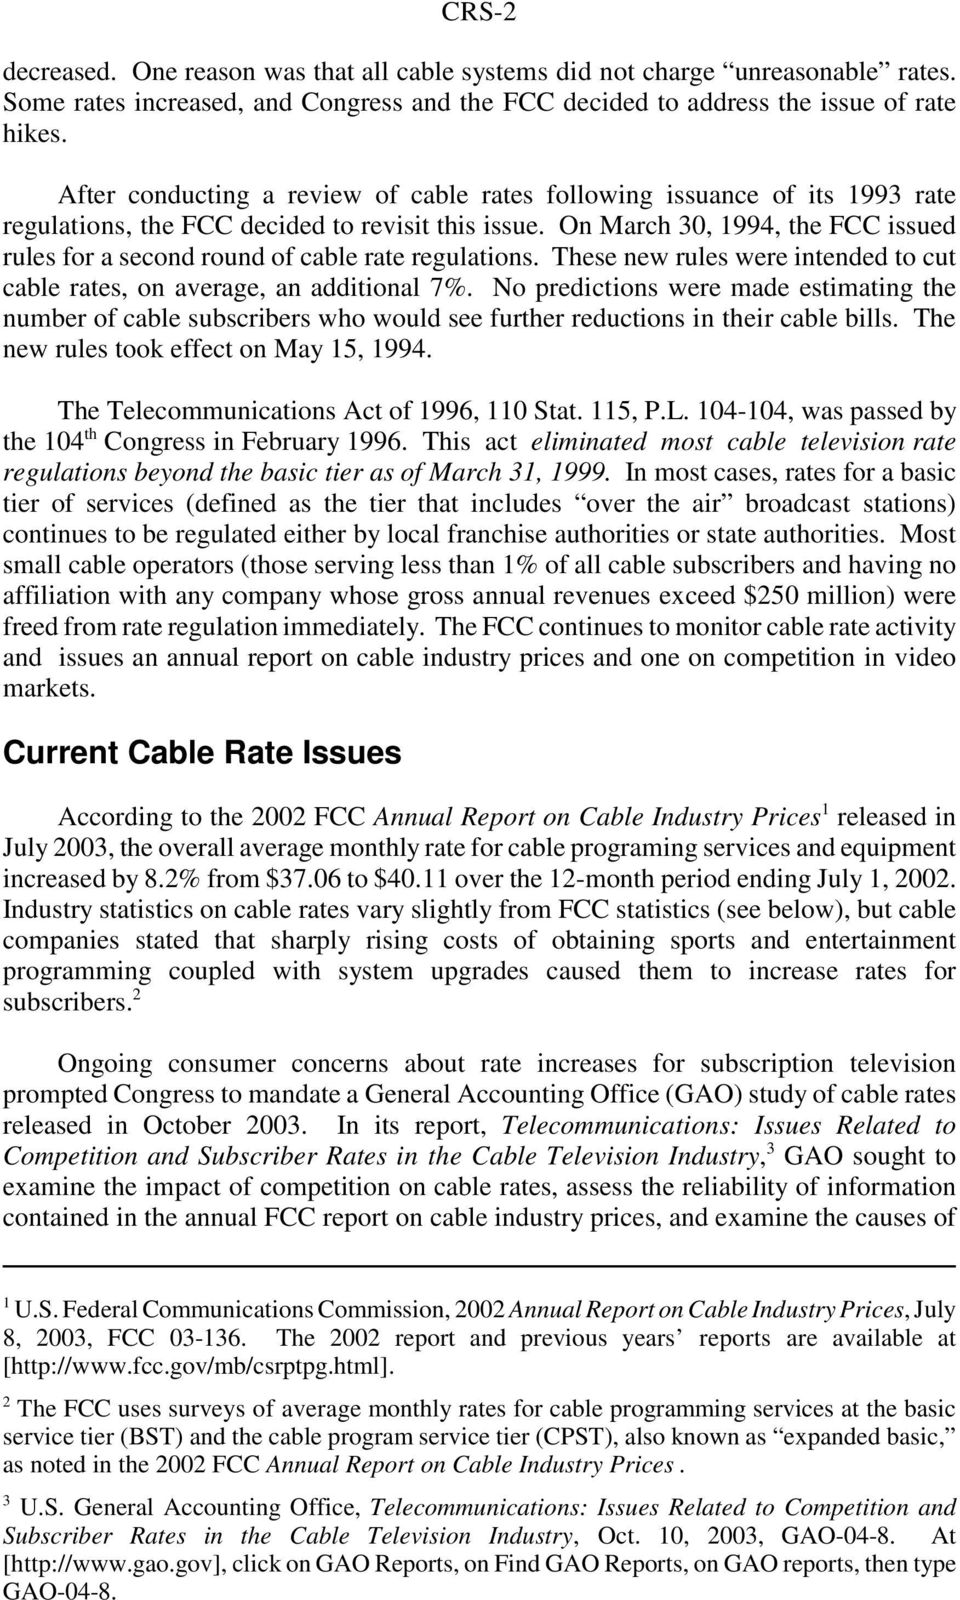 On March 30, 1994, the FCC issued rules for a second round of cable rate regulations. These new rules were intended to cut cable rates, on average, an additional 7%.